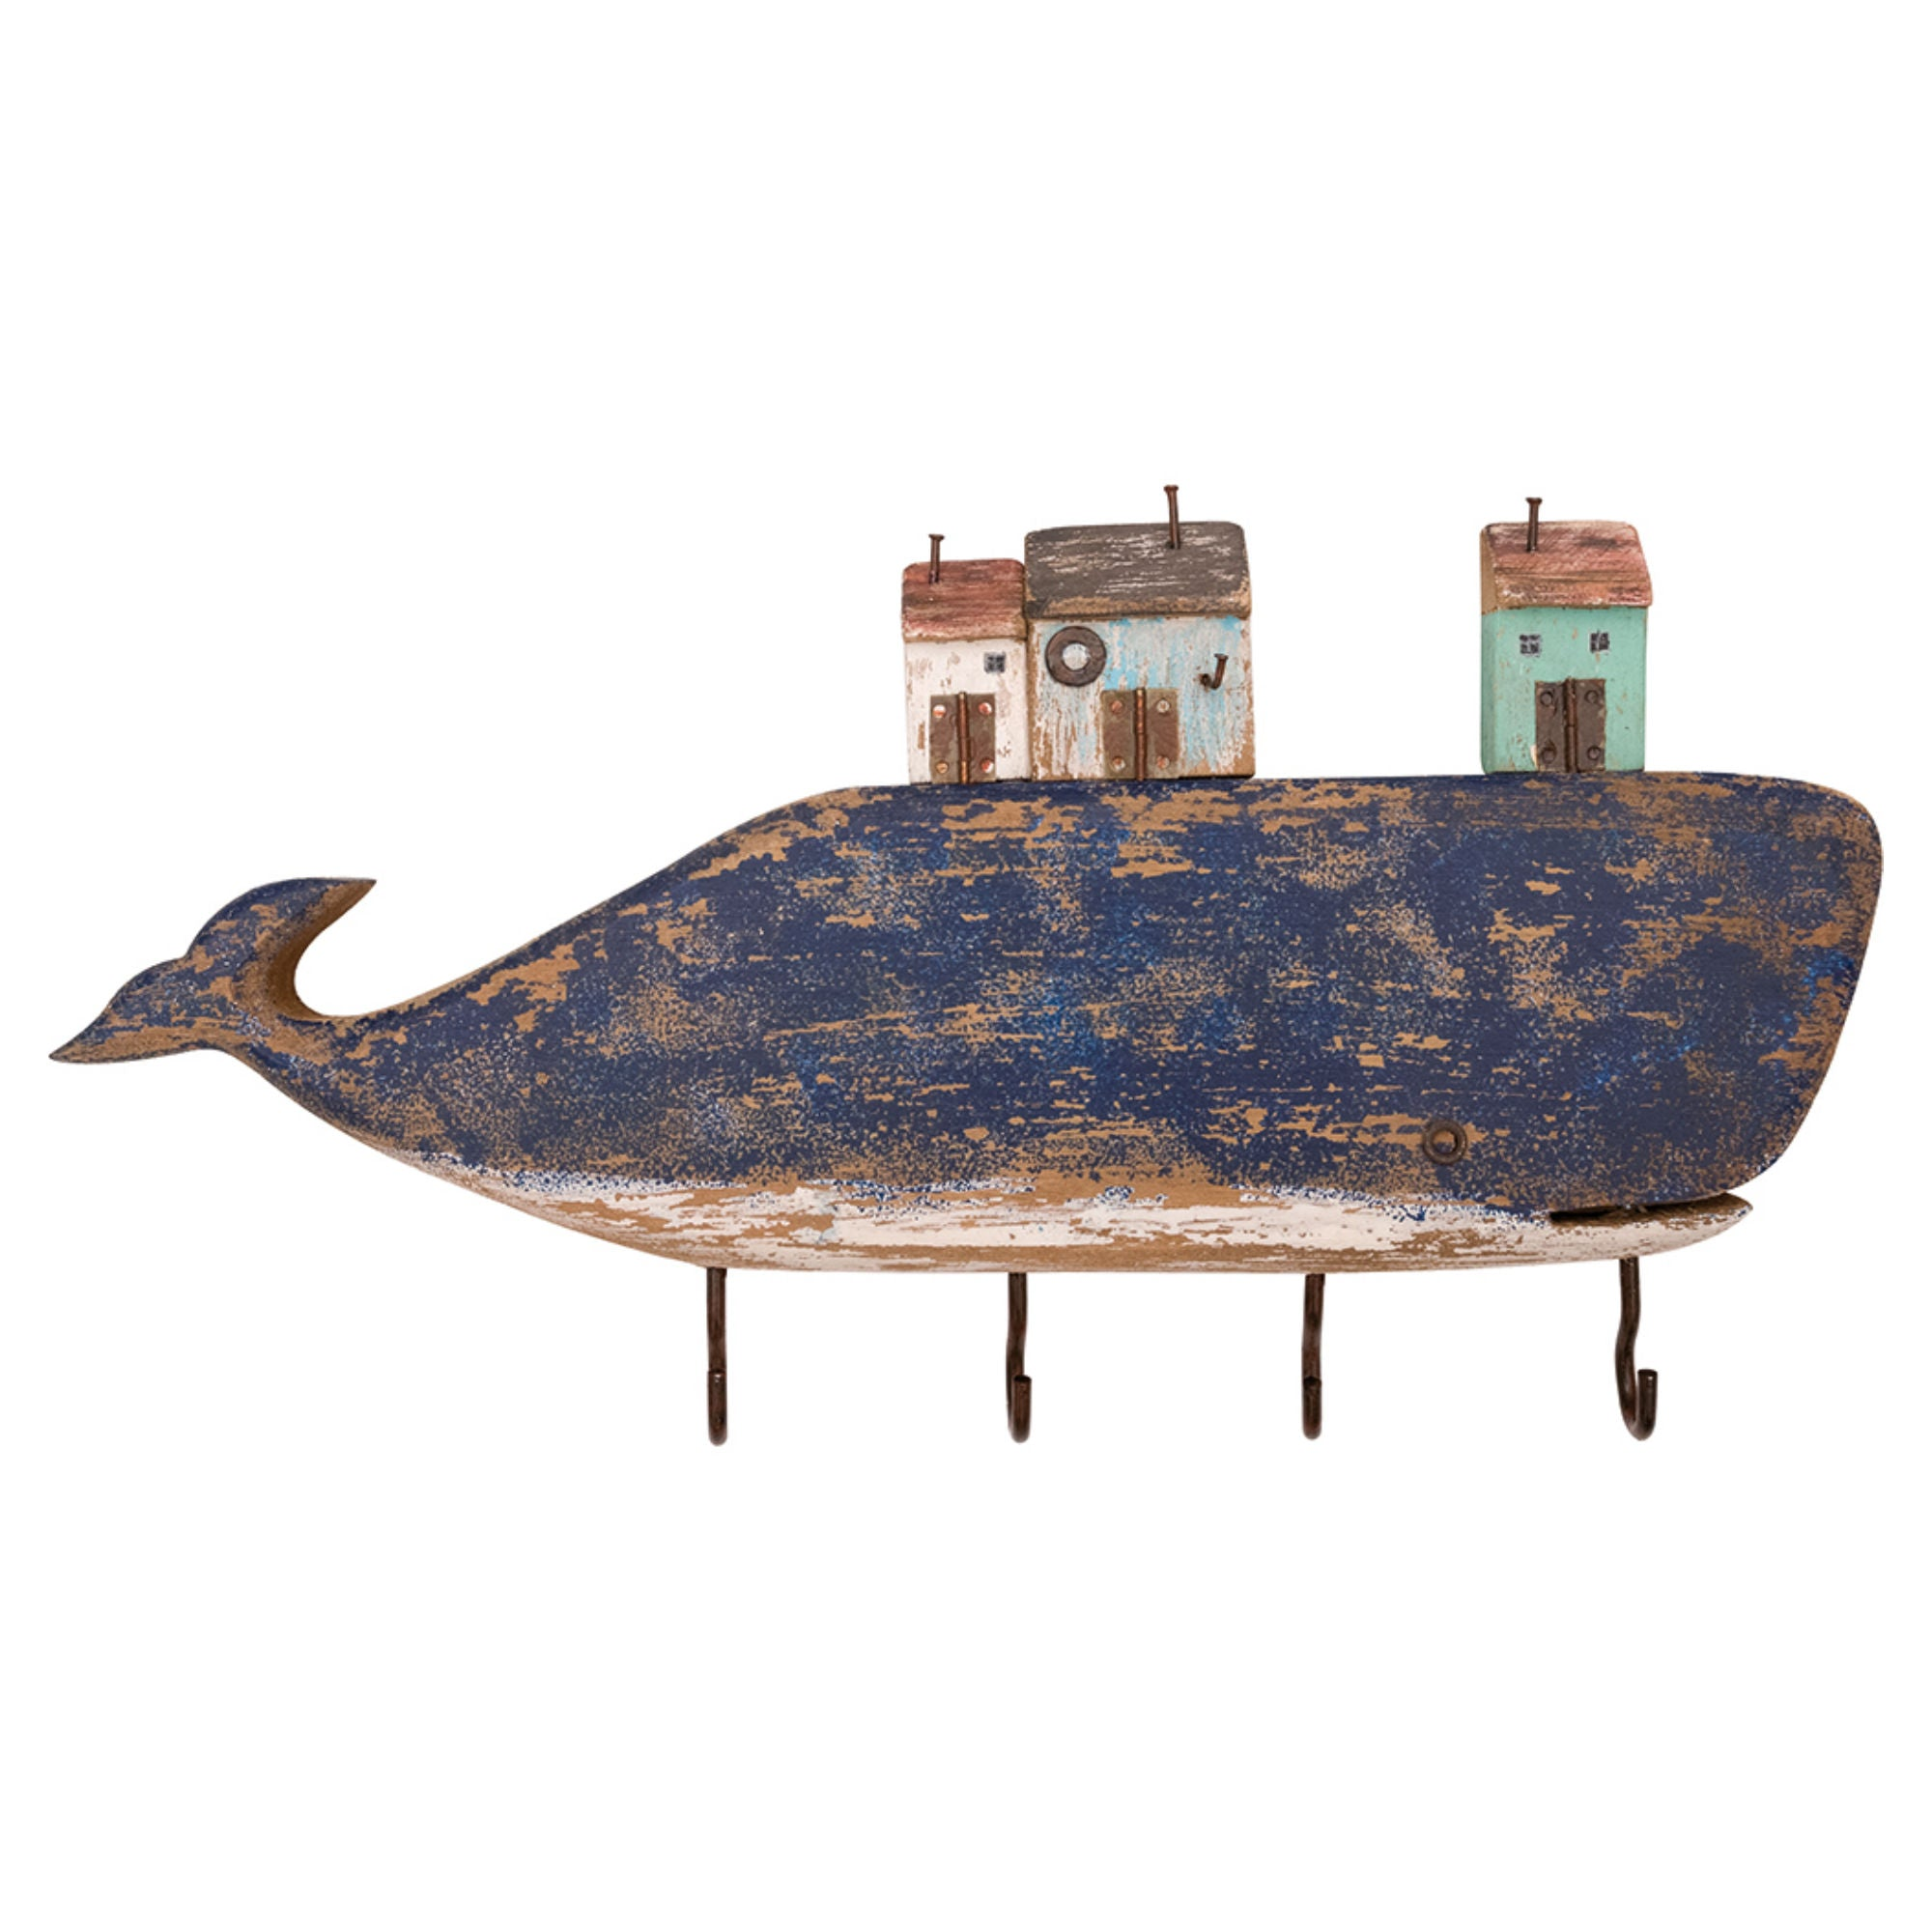 Batela Giftware-Key Ring-Driftwood Rey Ring Whale with Houses